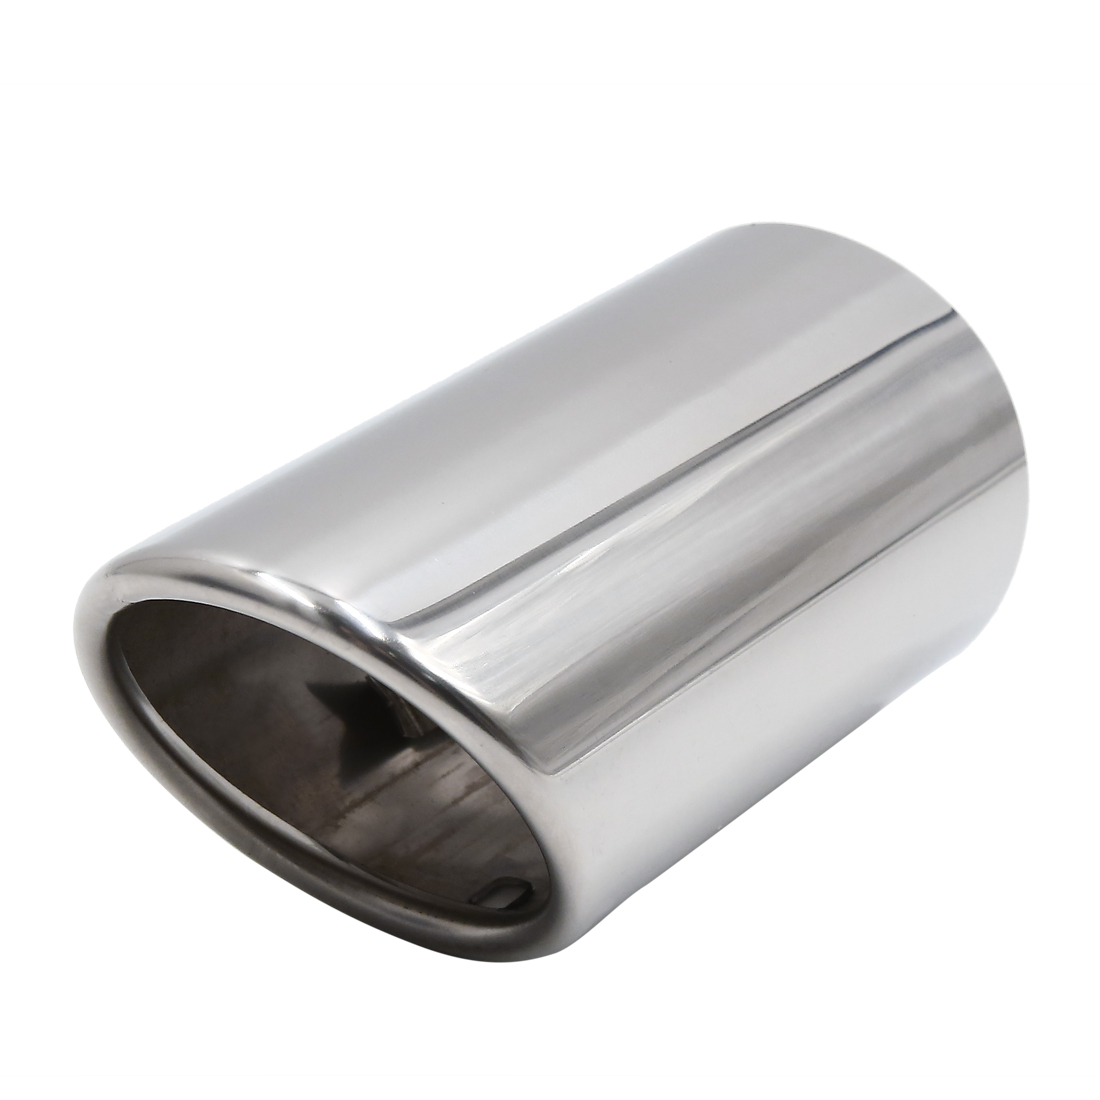 Silver Tone Car Rear Round Stainless Steel Exhaust Muffler Tail Pipe